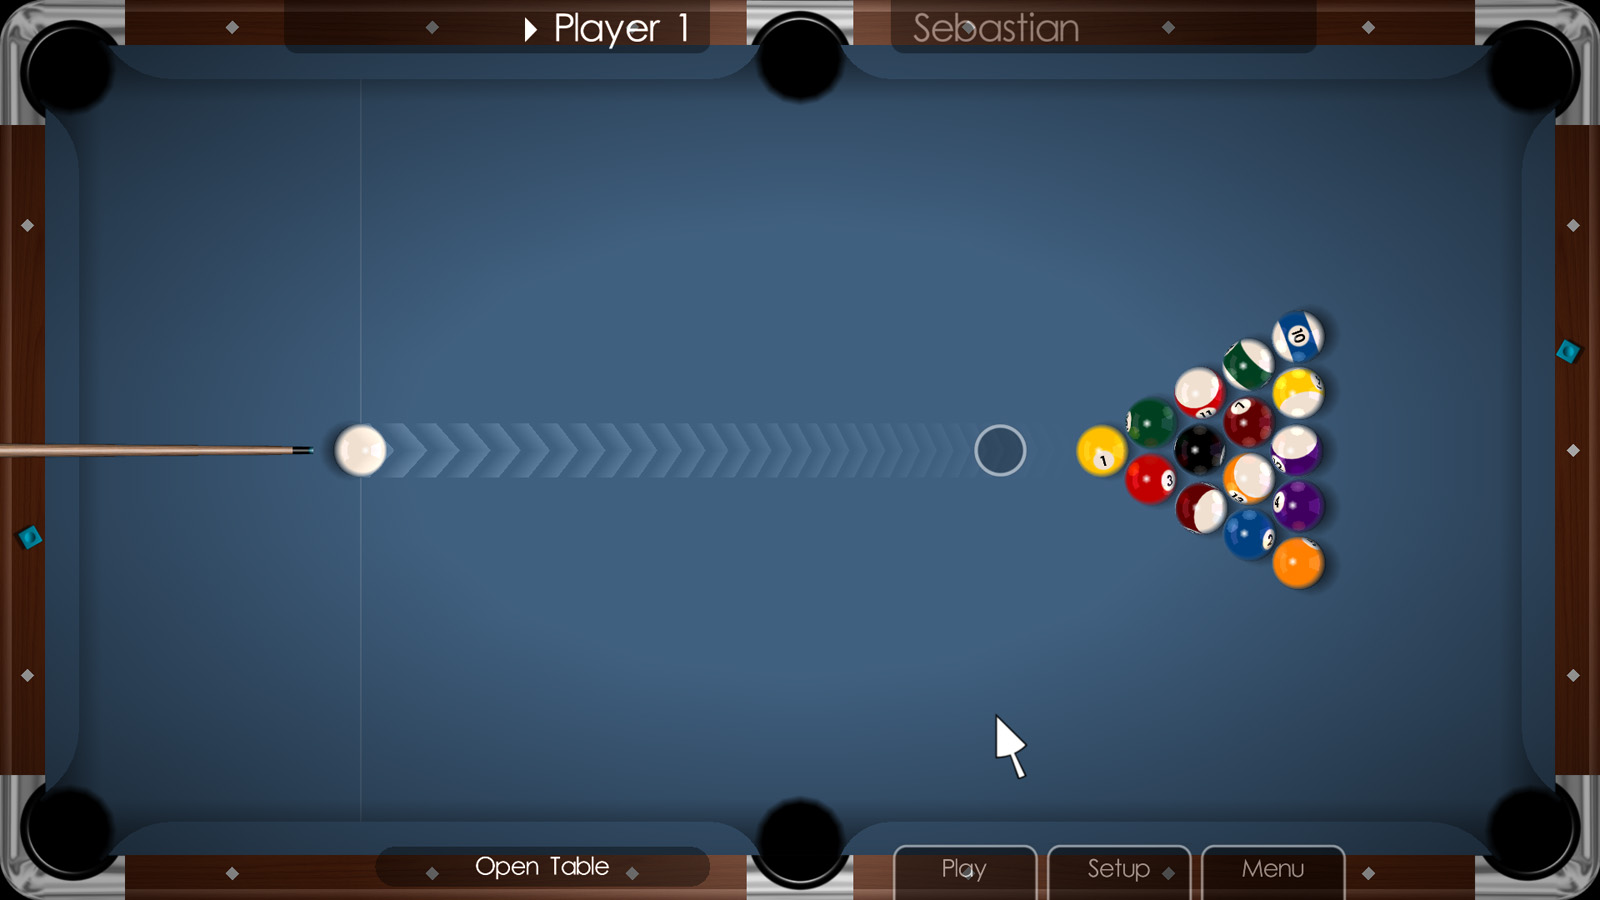 ball chat rooms General - if you are a first timer here at 8ball-online, this is a good place for you to get familiar with the chatroomsthe rooms always have.